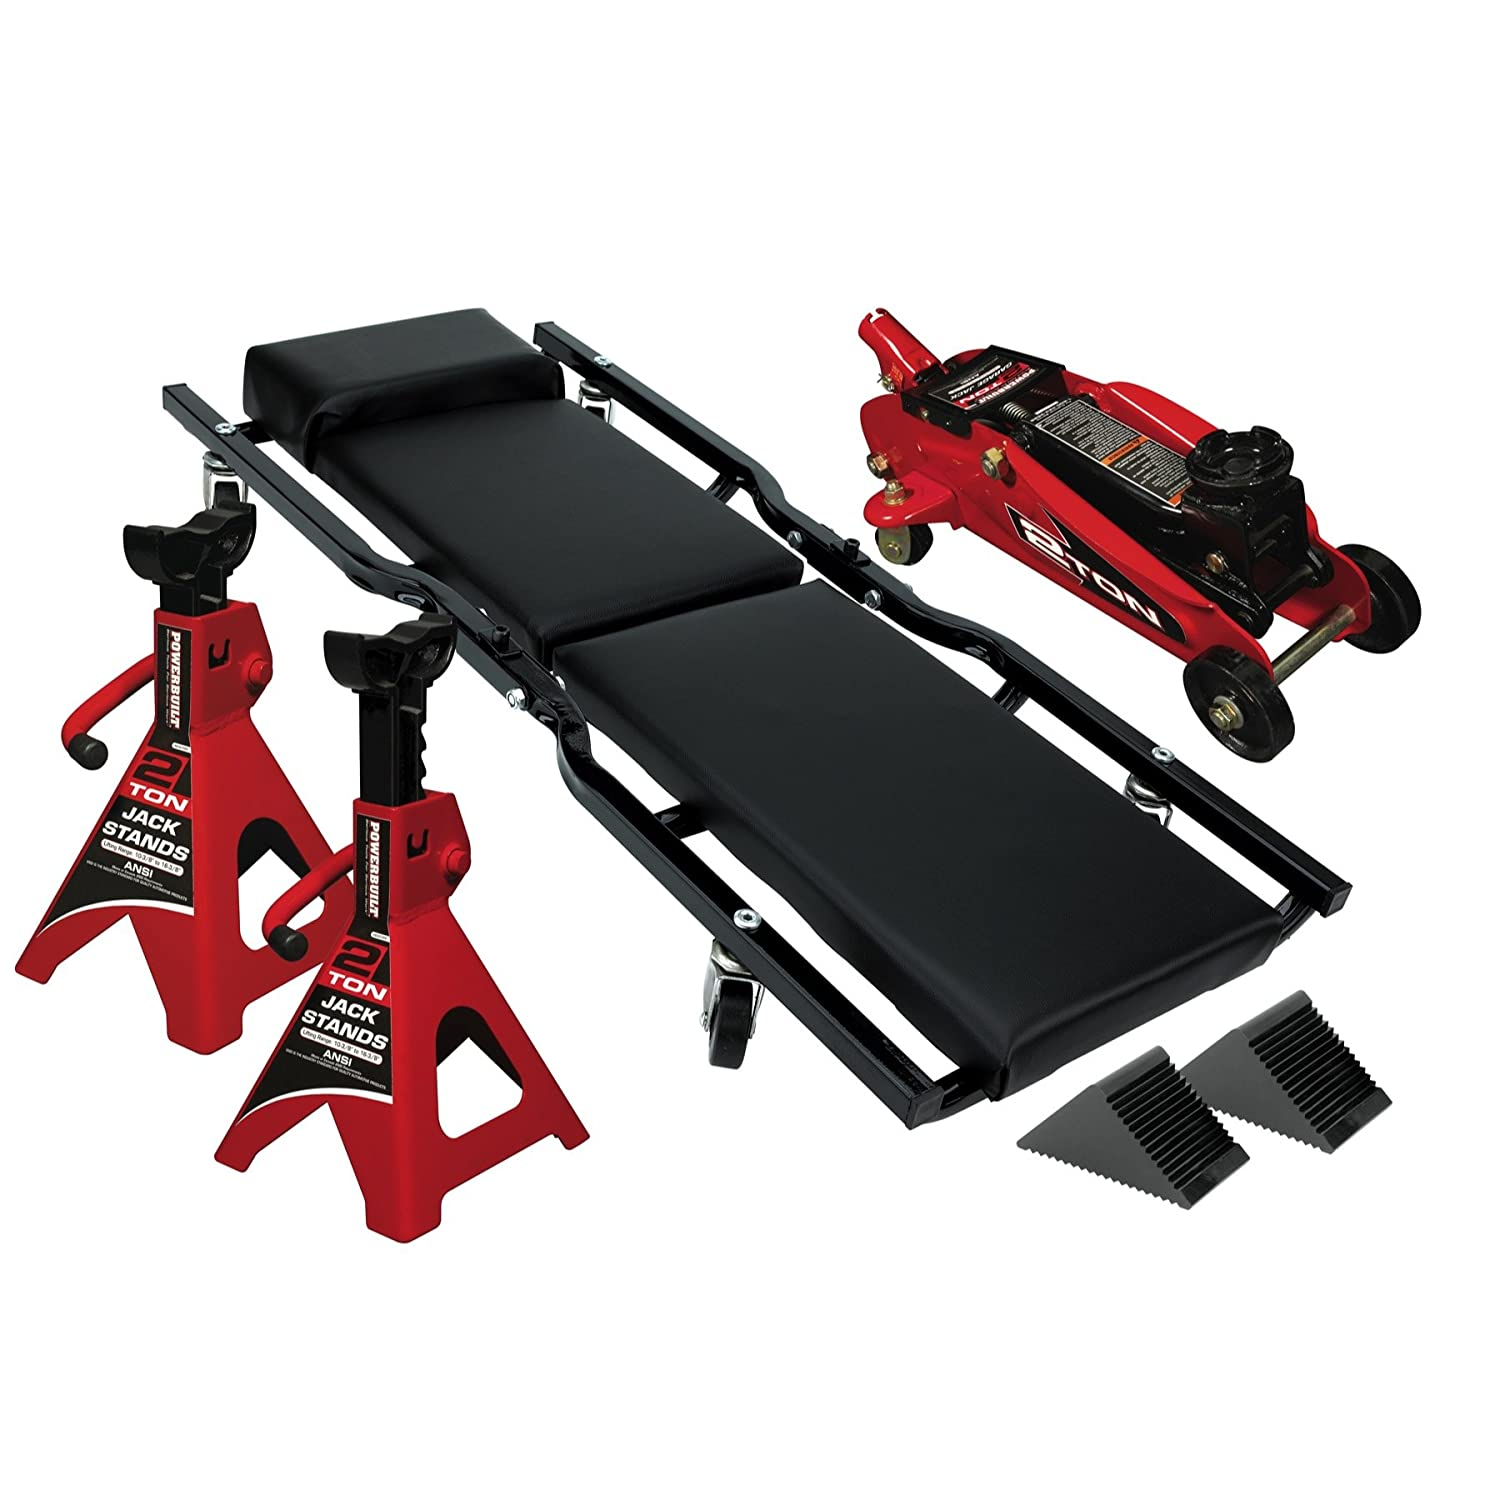 Amazon.com: Powerbuilt 6 Piece Car Service Set, Floor Jack, Jack Stands, Creeper, 640816: Automotive